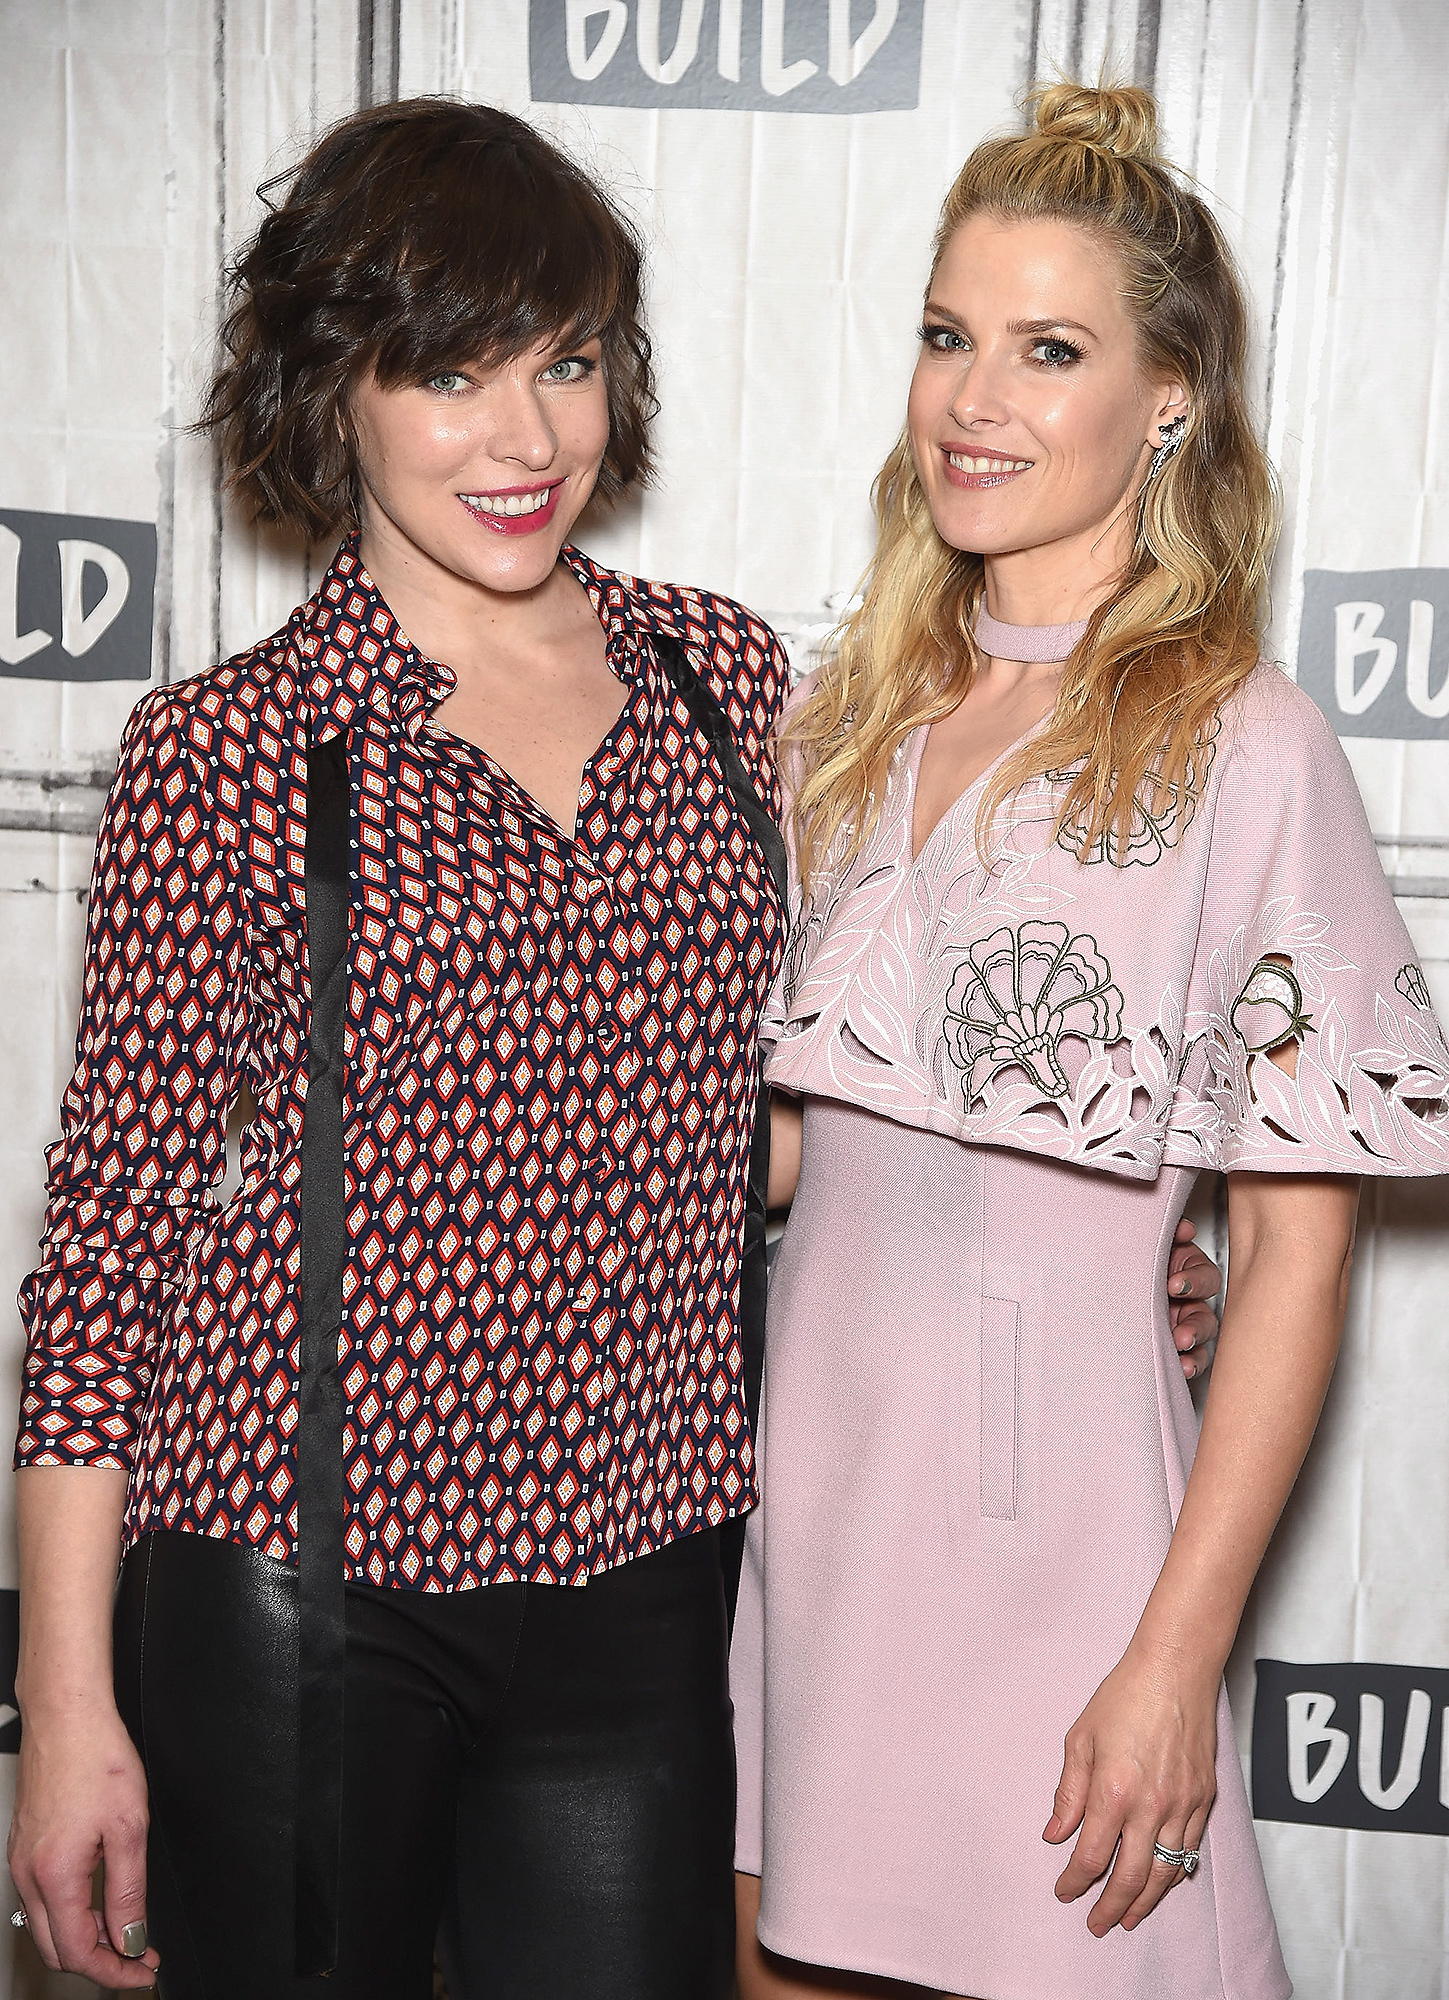 """Build Series Presents Milla Jovovich and Ali Larter Discussing """"Resident Evil: The Final Chapter"""""""